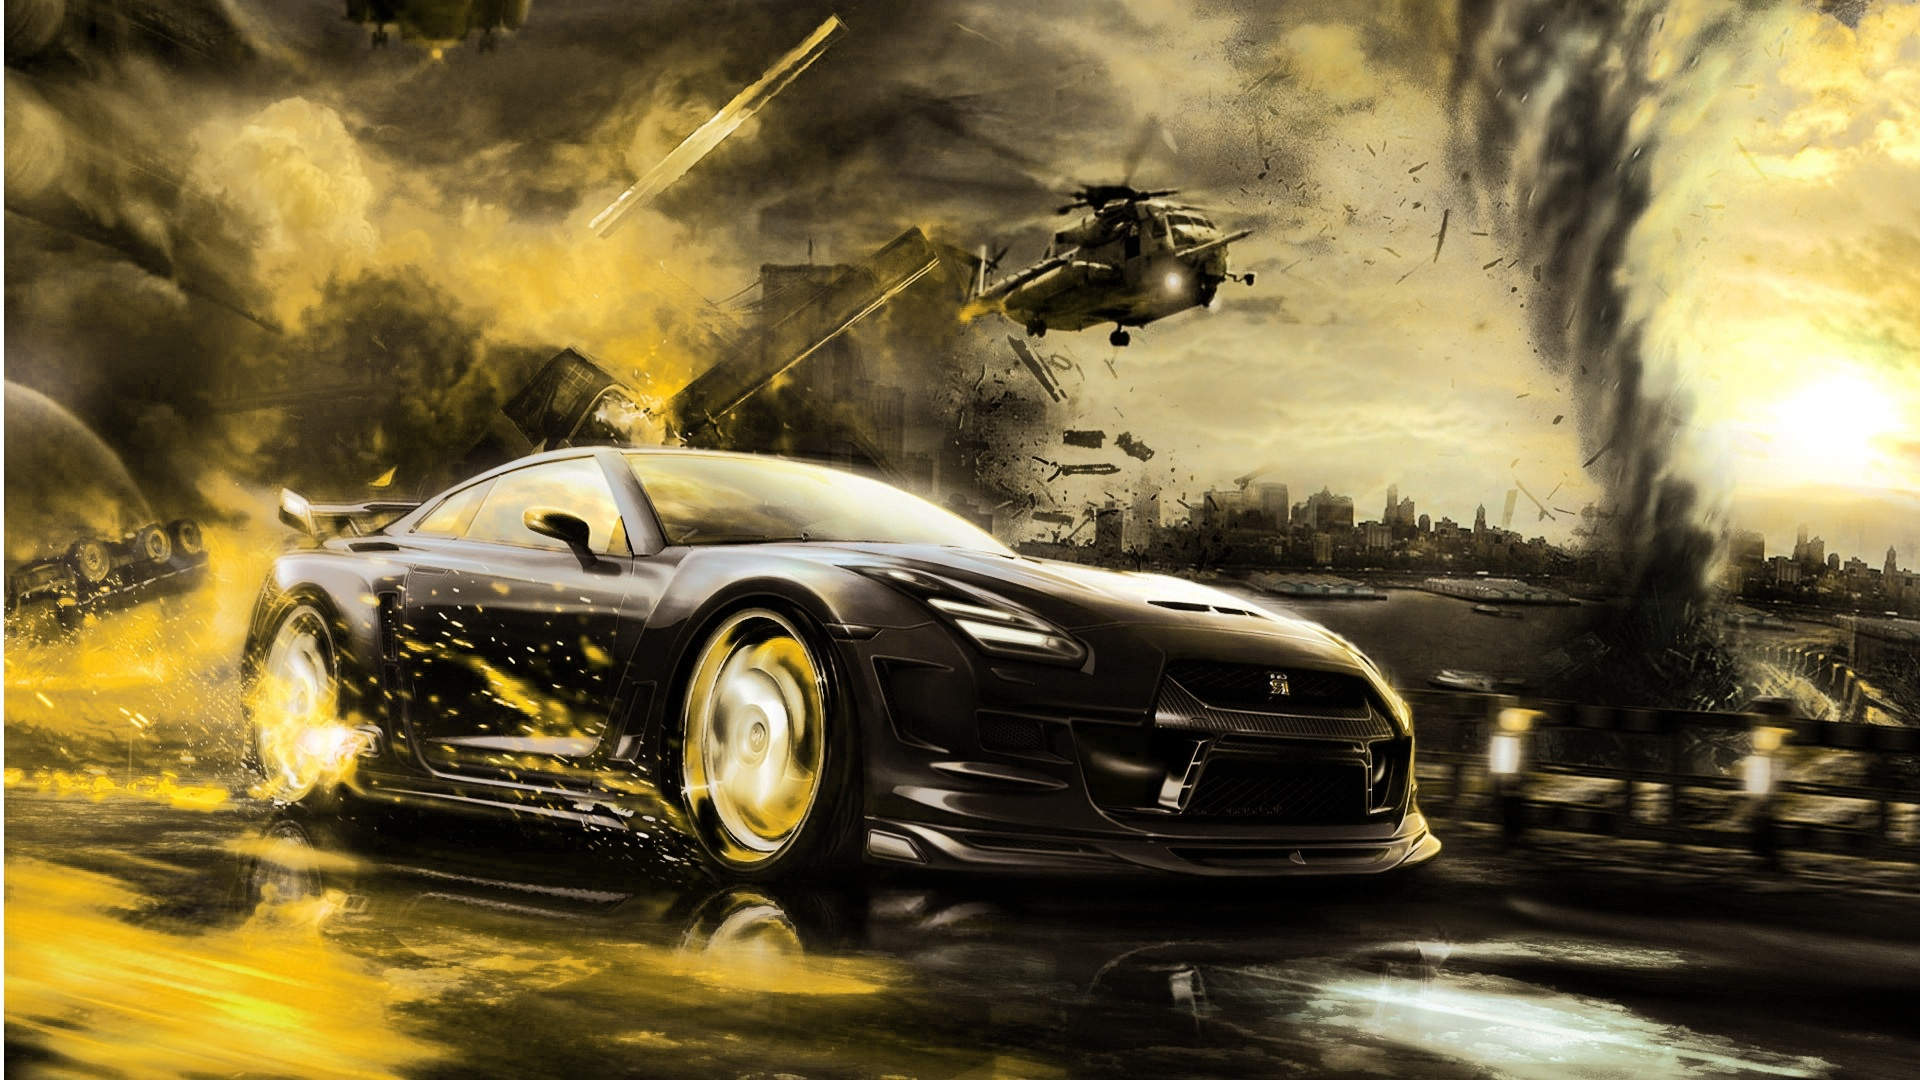 Cool Car Wallpapers Hd 1080p Wallpapersafari